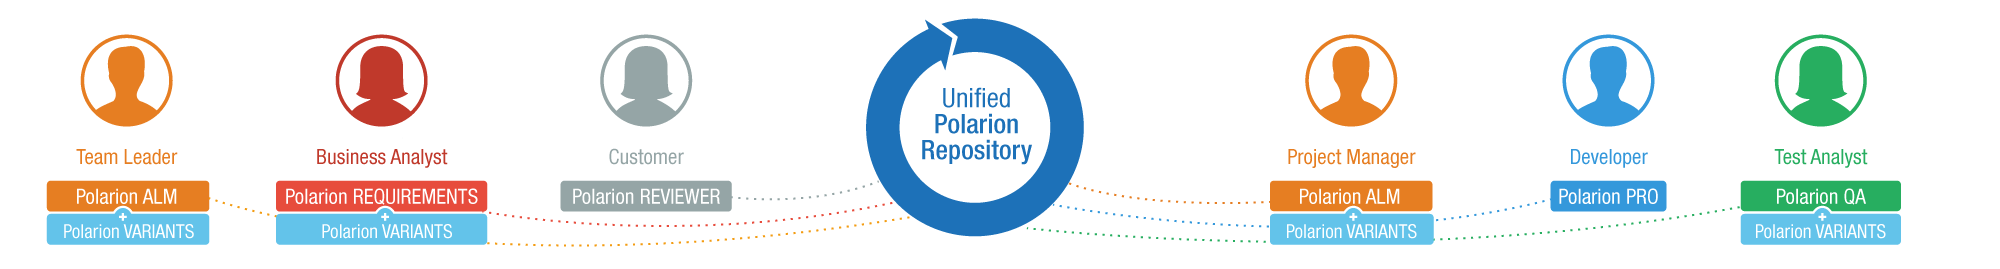 Polarion_Unified_repository.png